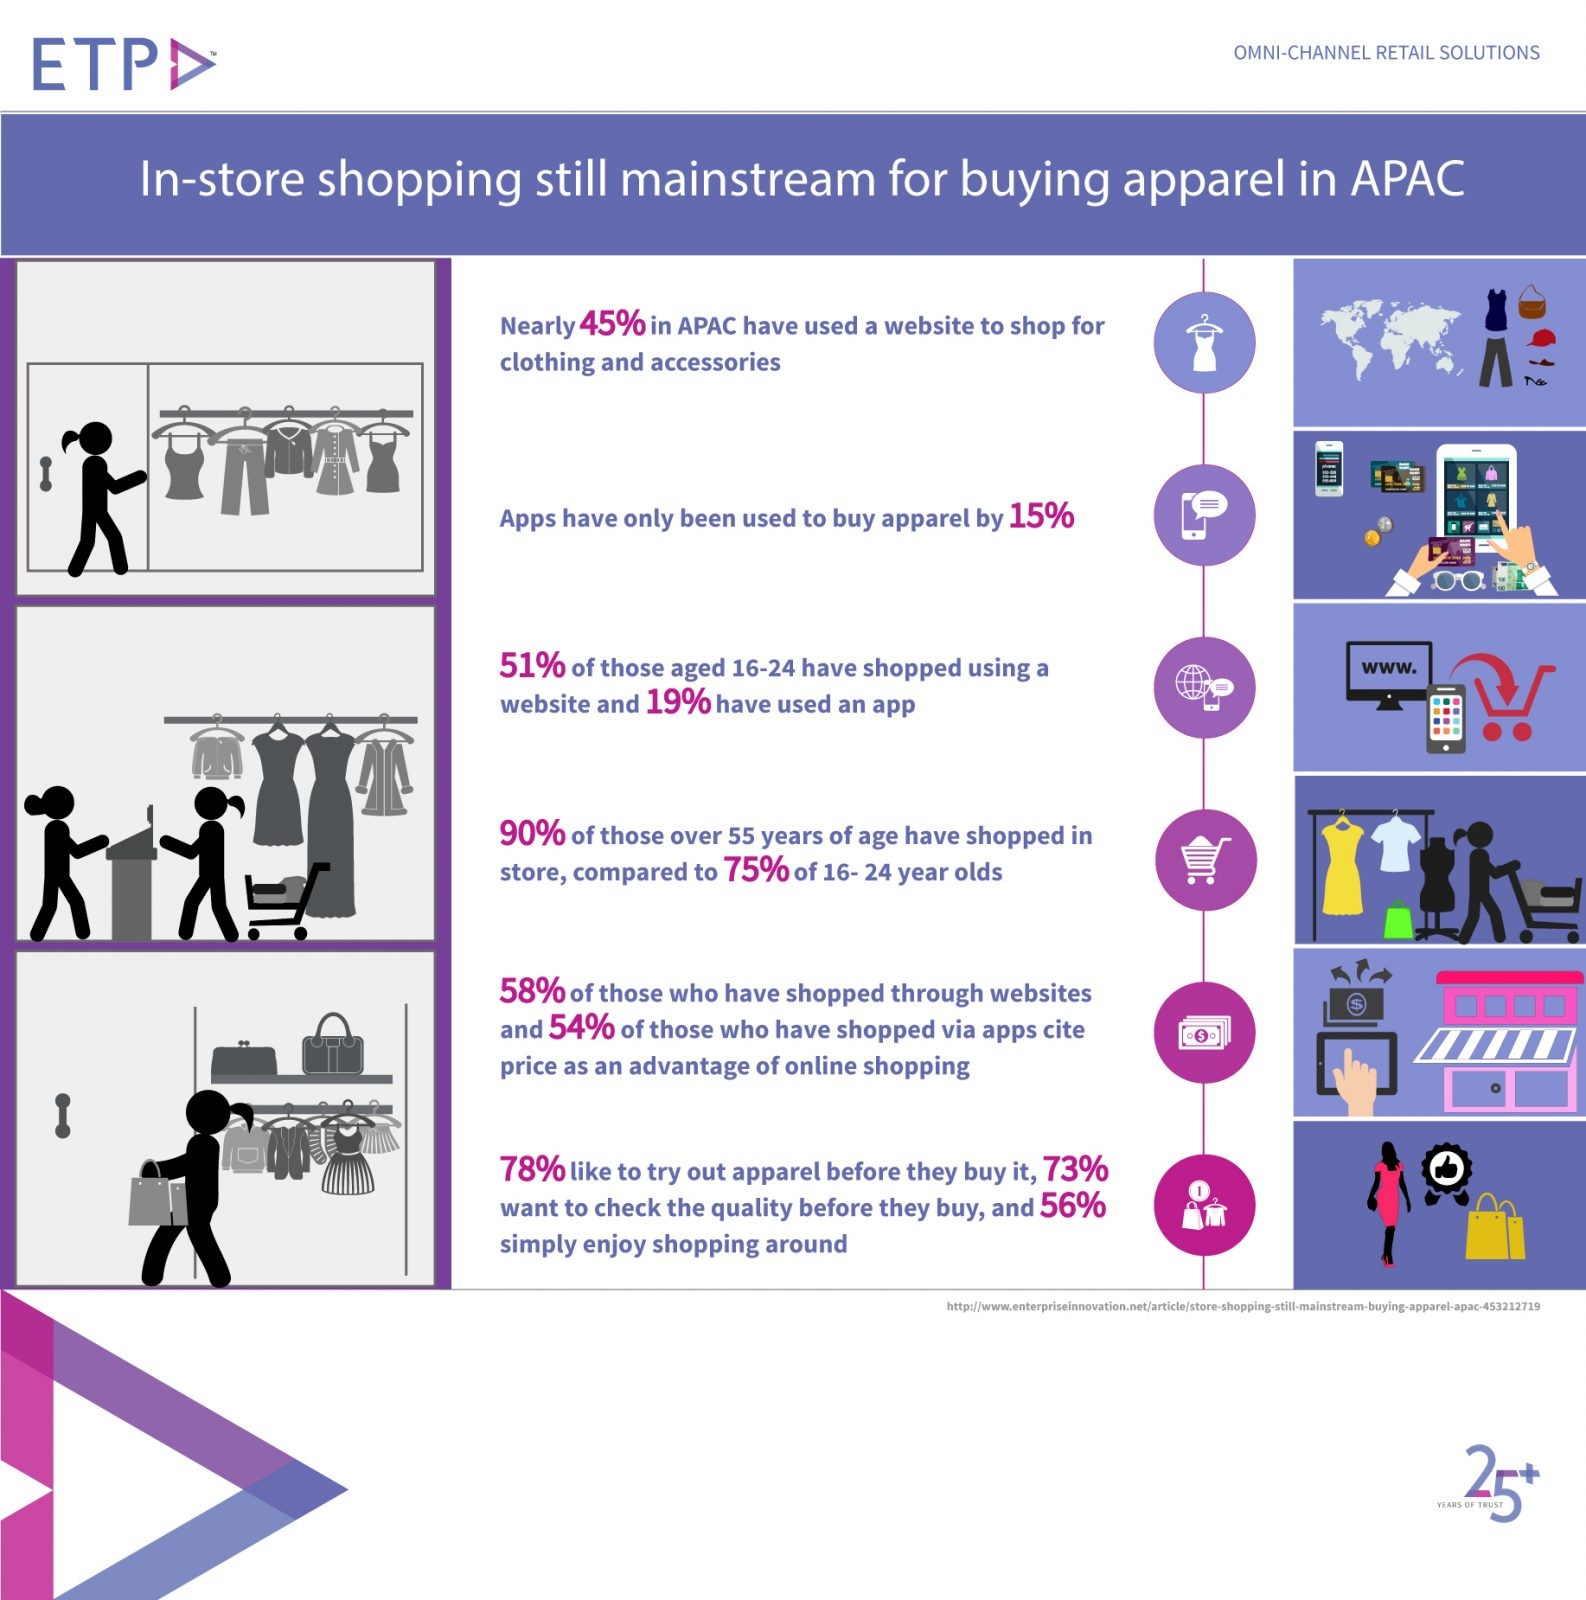 ETP Blog in-store shopping for apparels in APAC